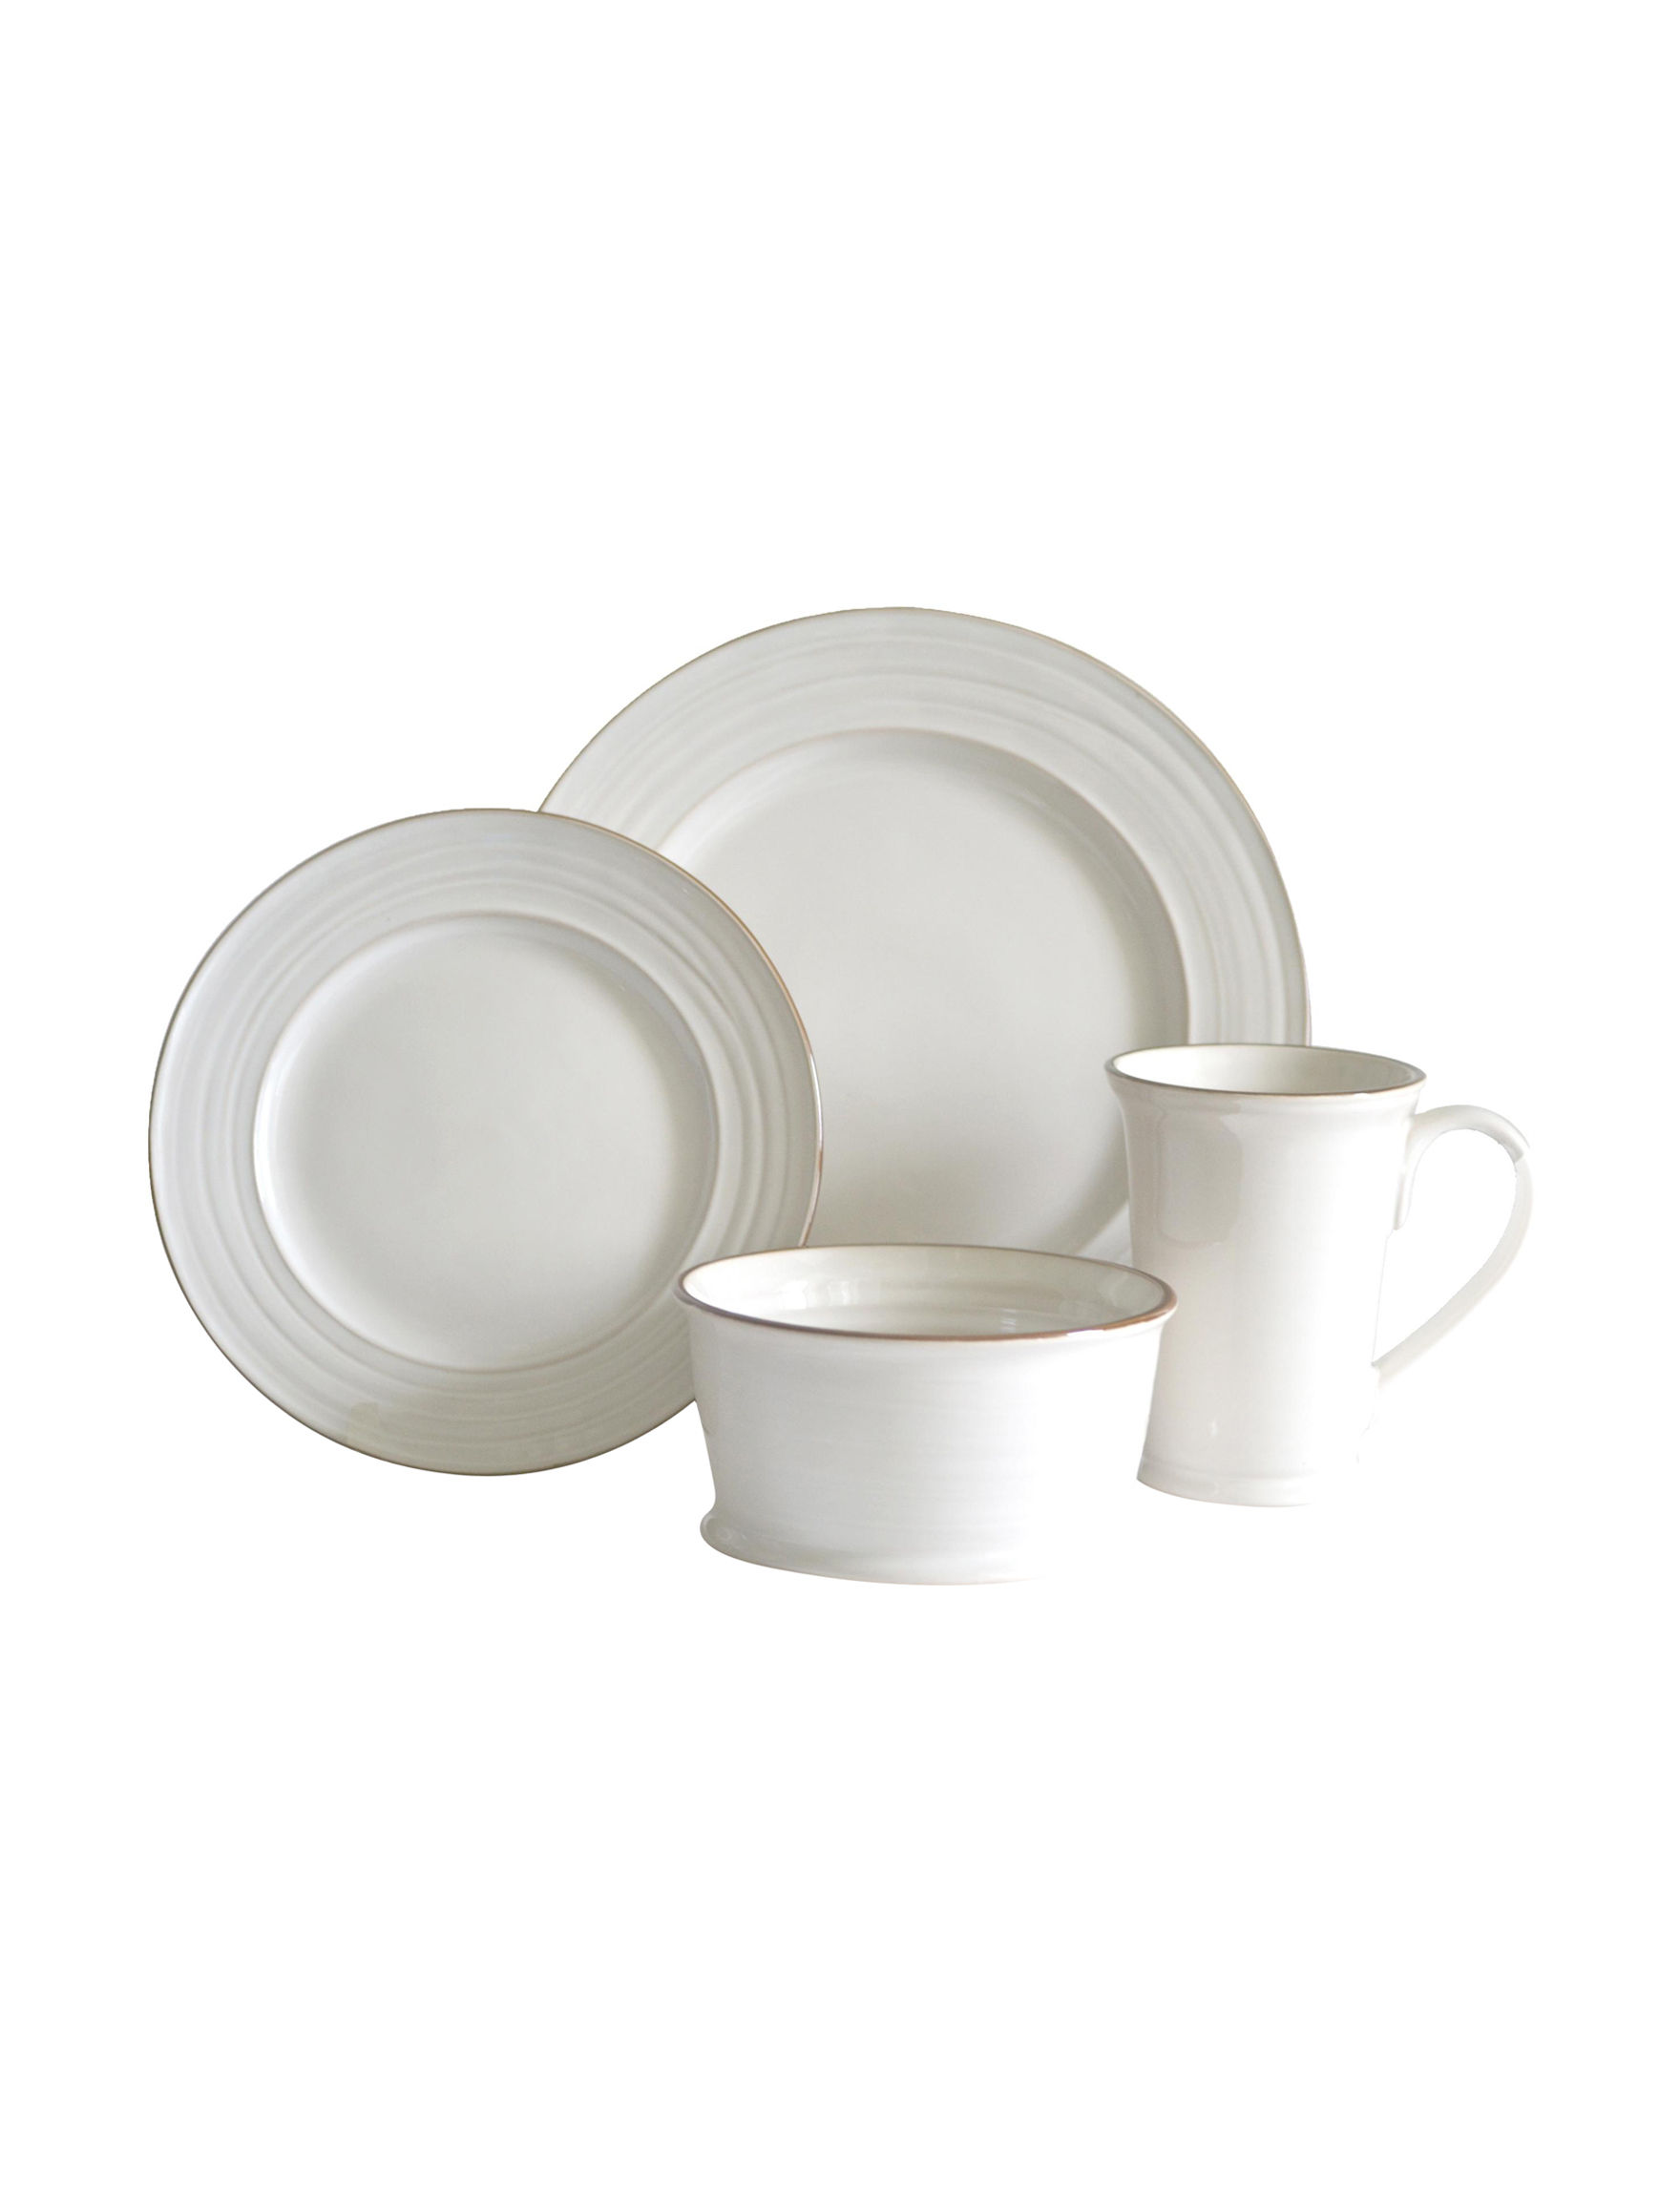 Baum Bros Imports 16-pc. Tuscany Dinnerware Set | Stage Stores